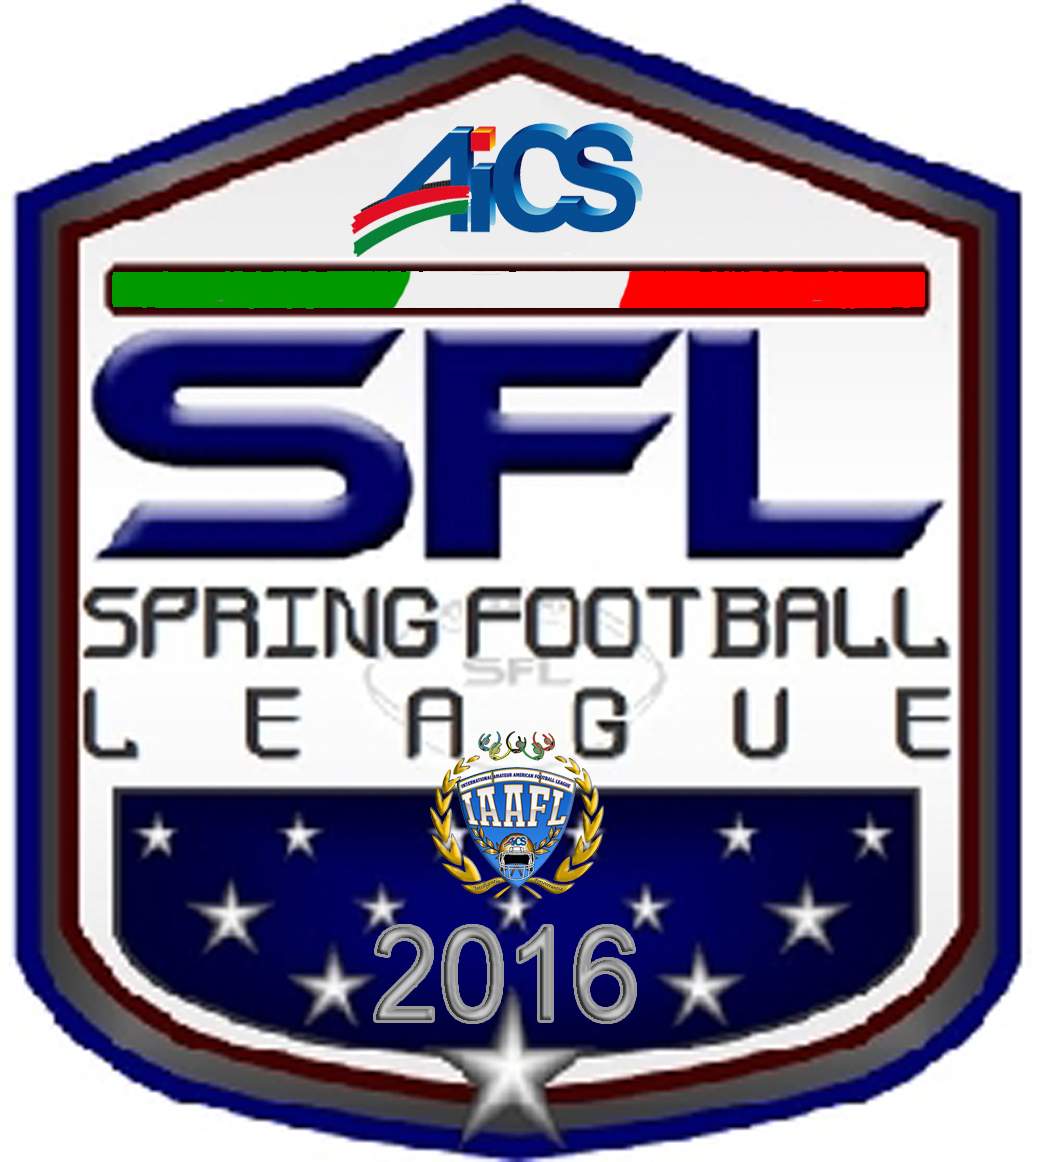 sprinf football league